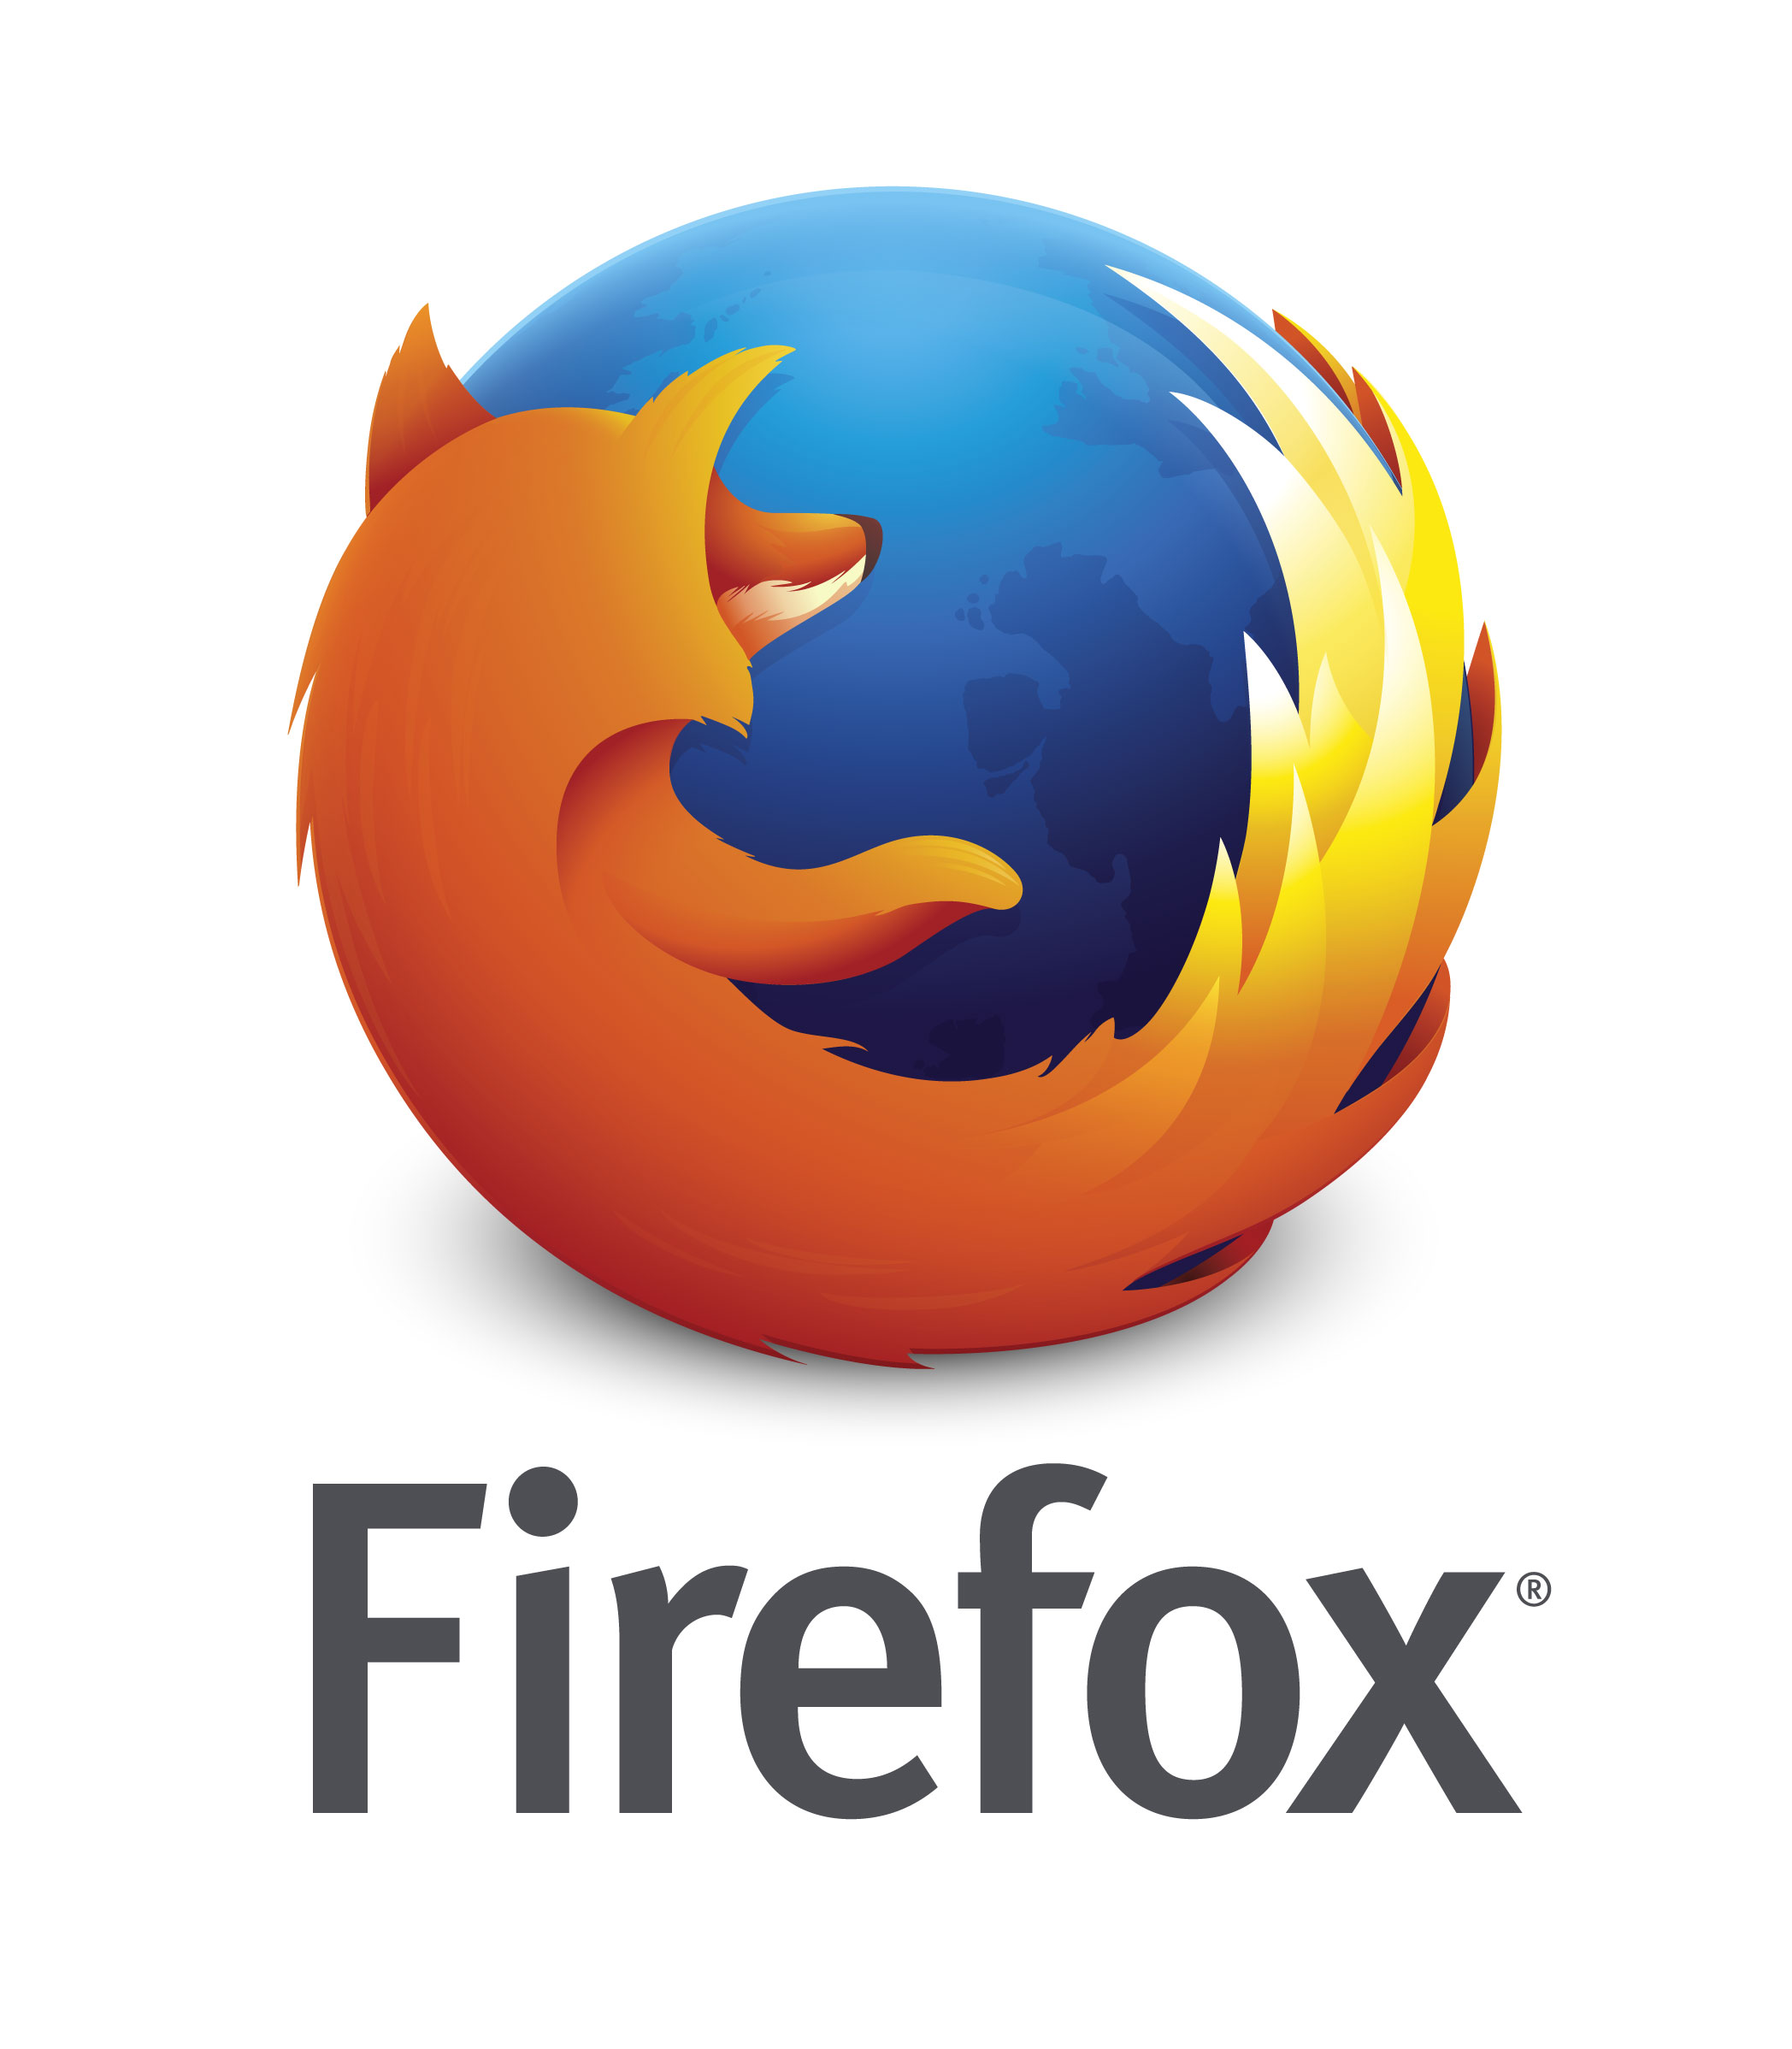 image depicting the mozilla firefox icon